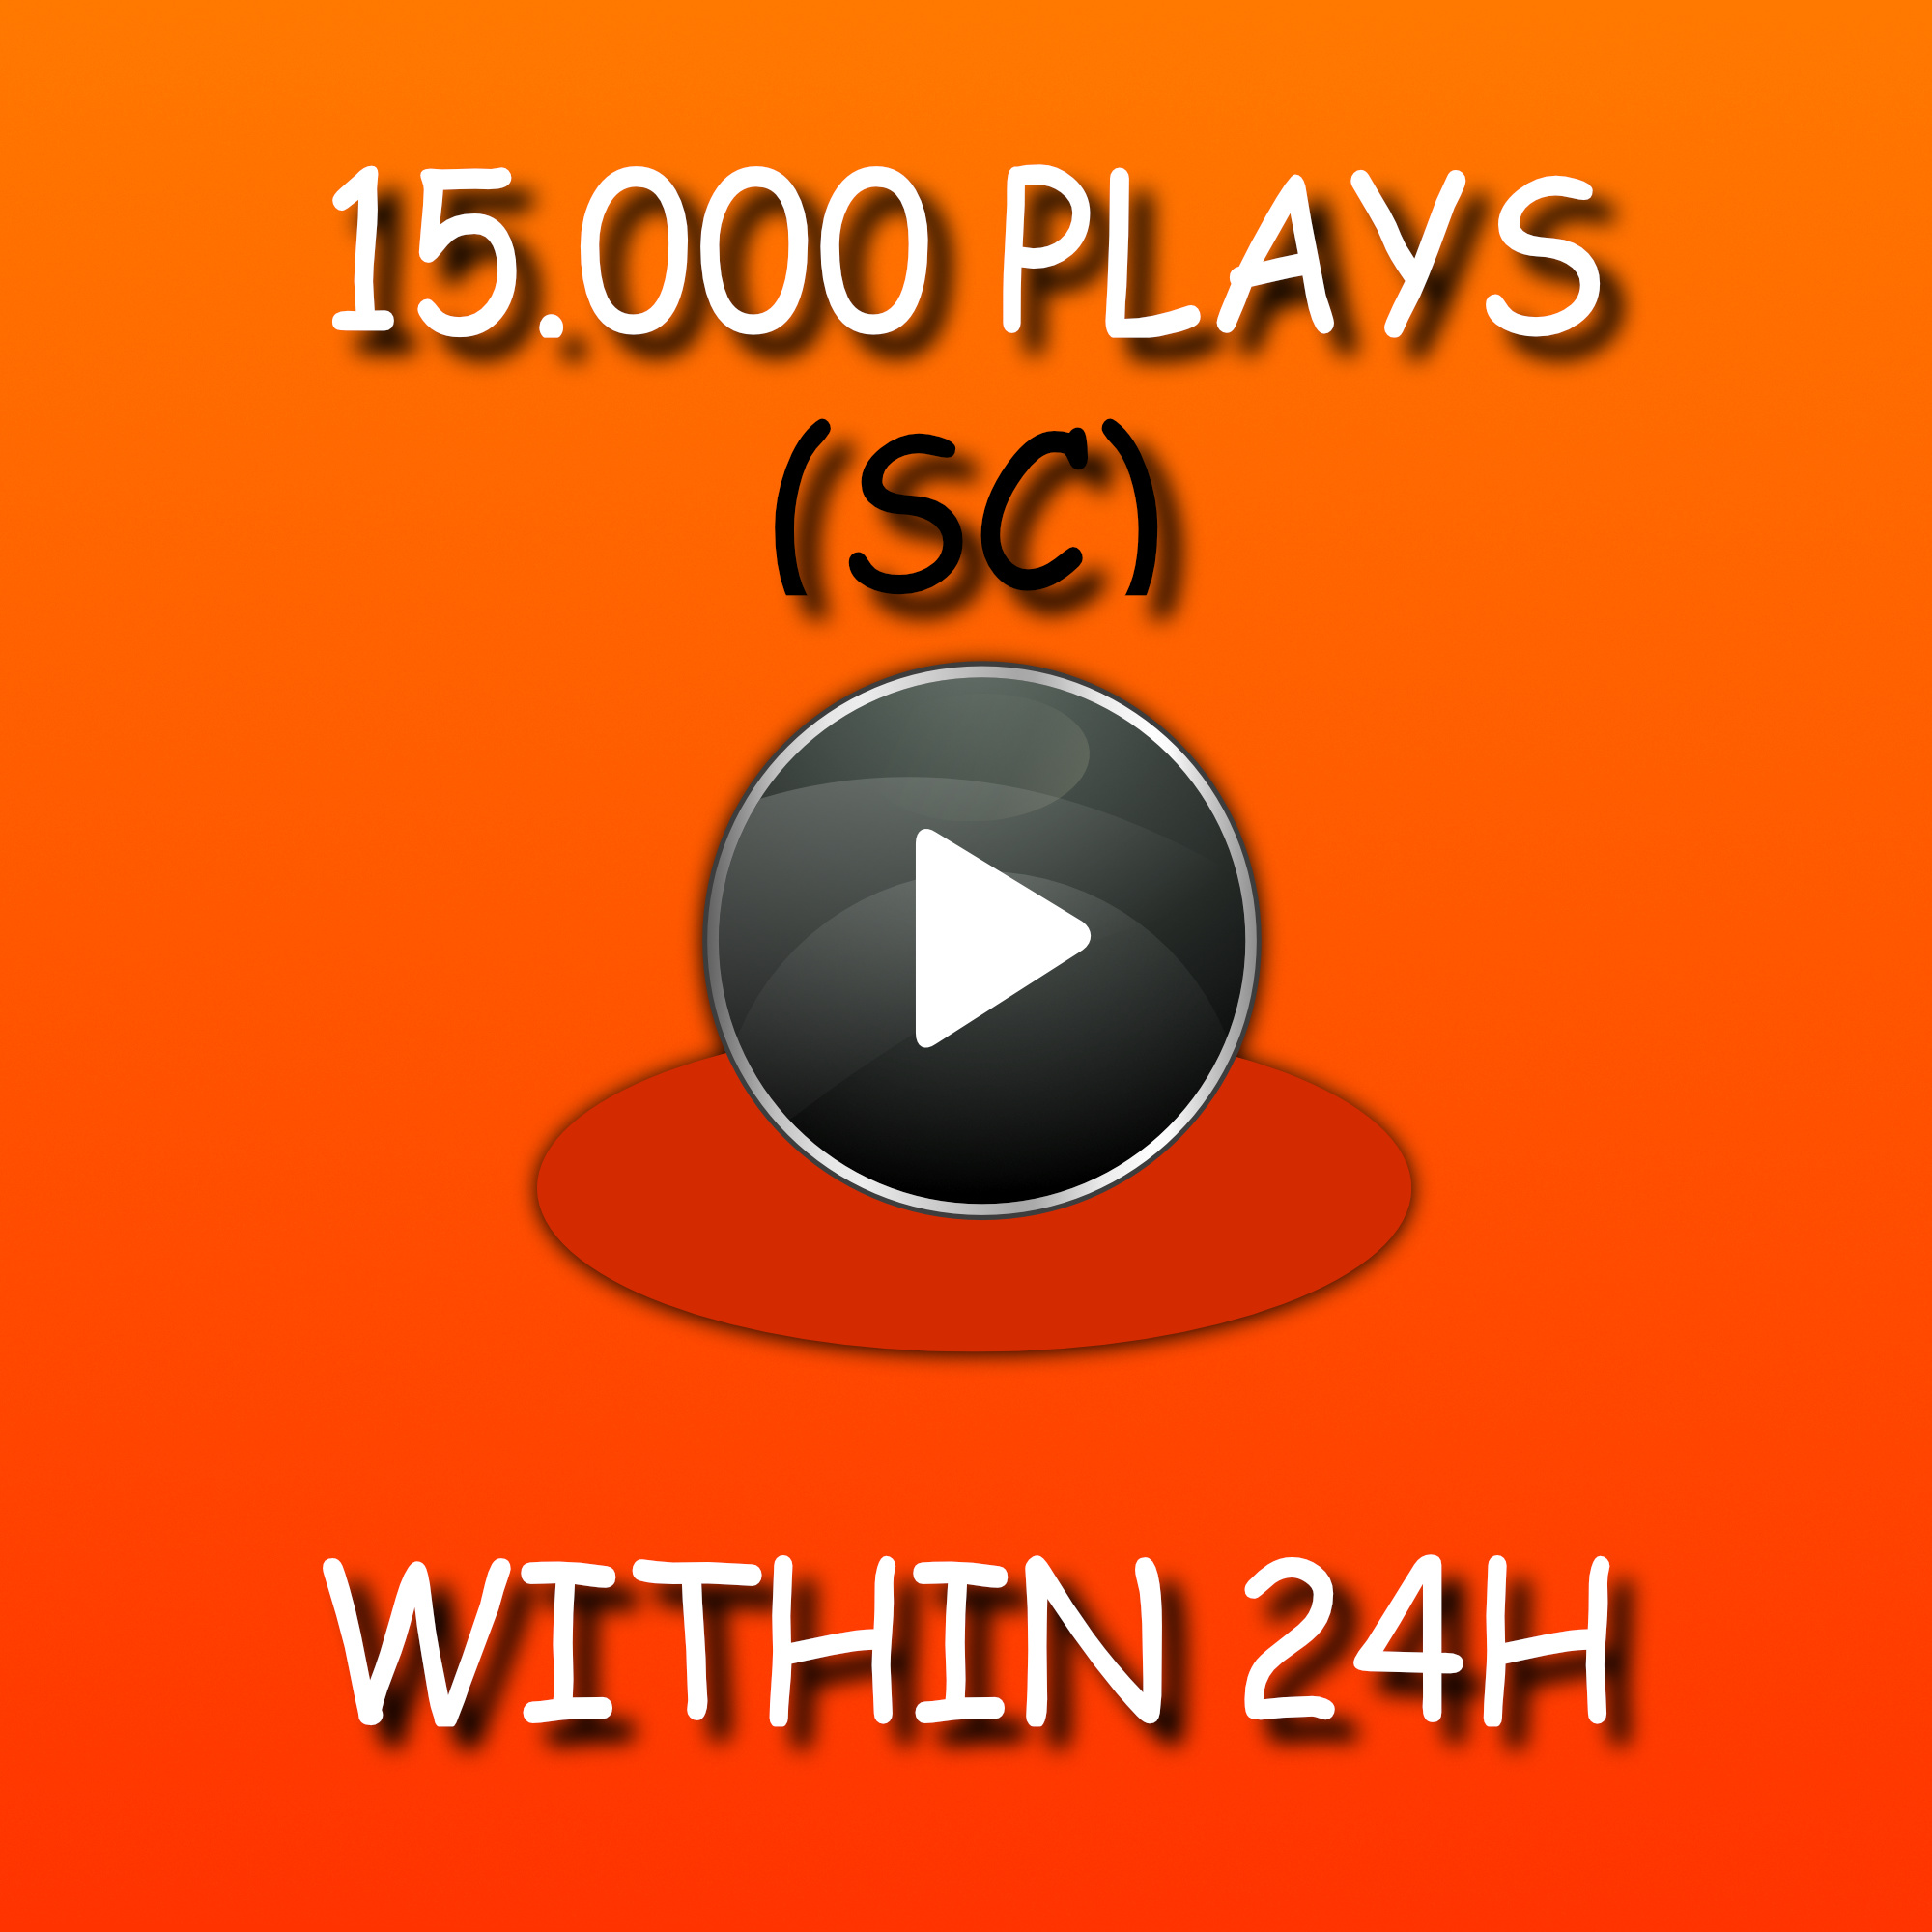 Grow your music Audience within 24H